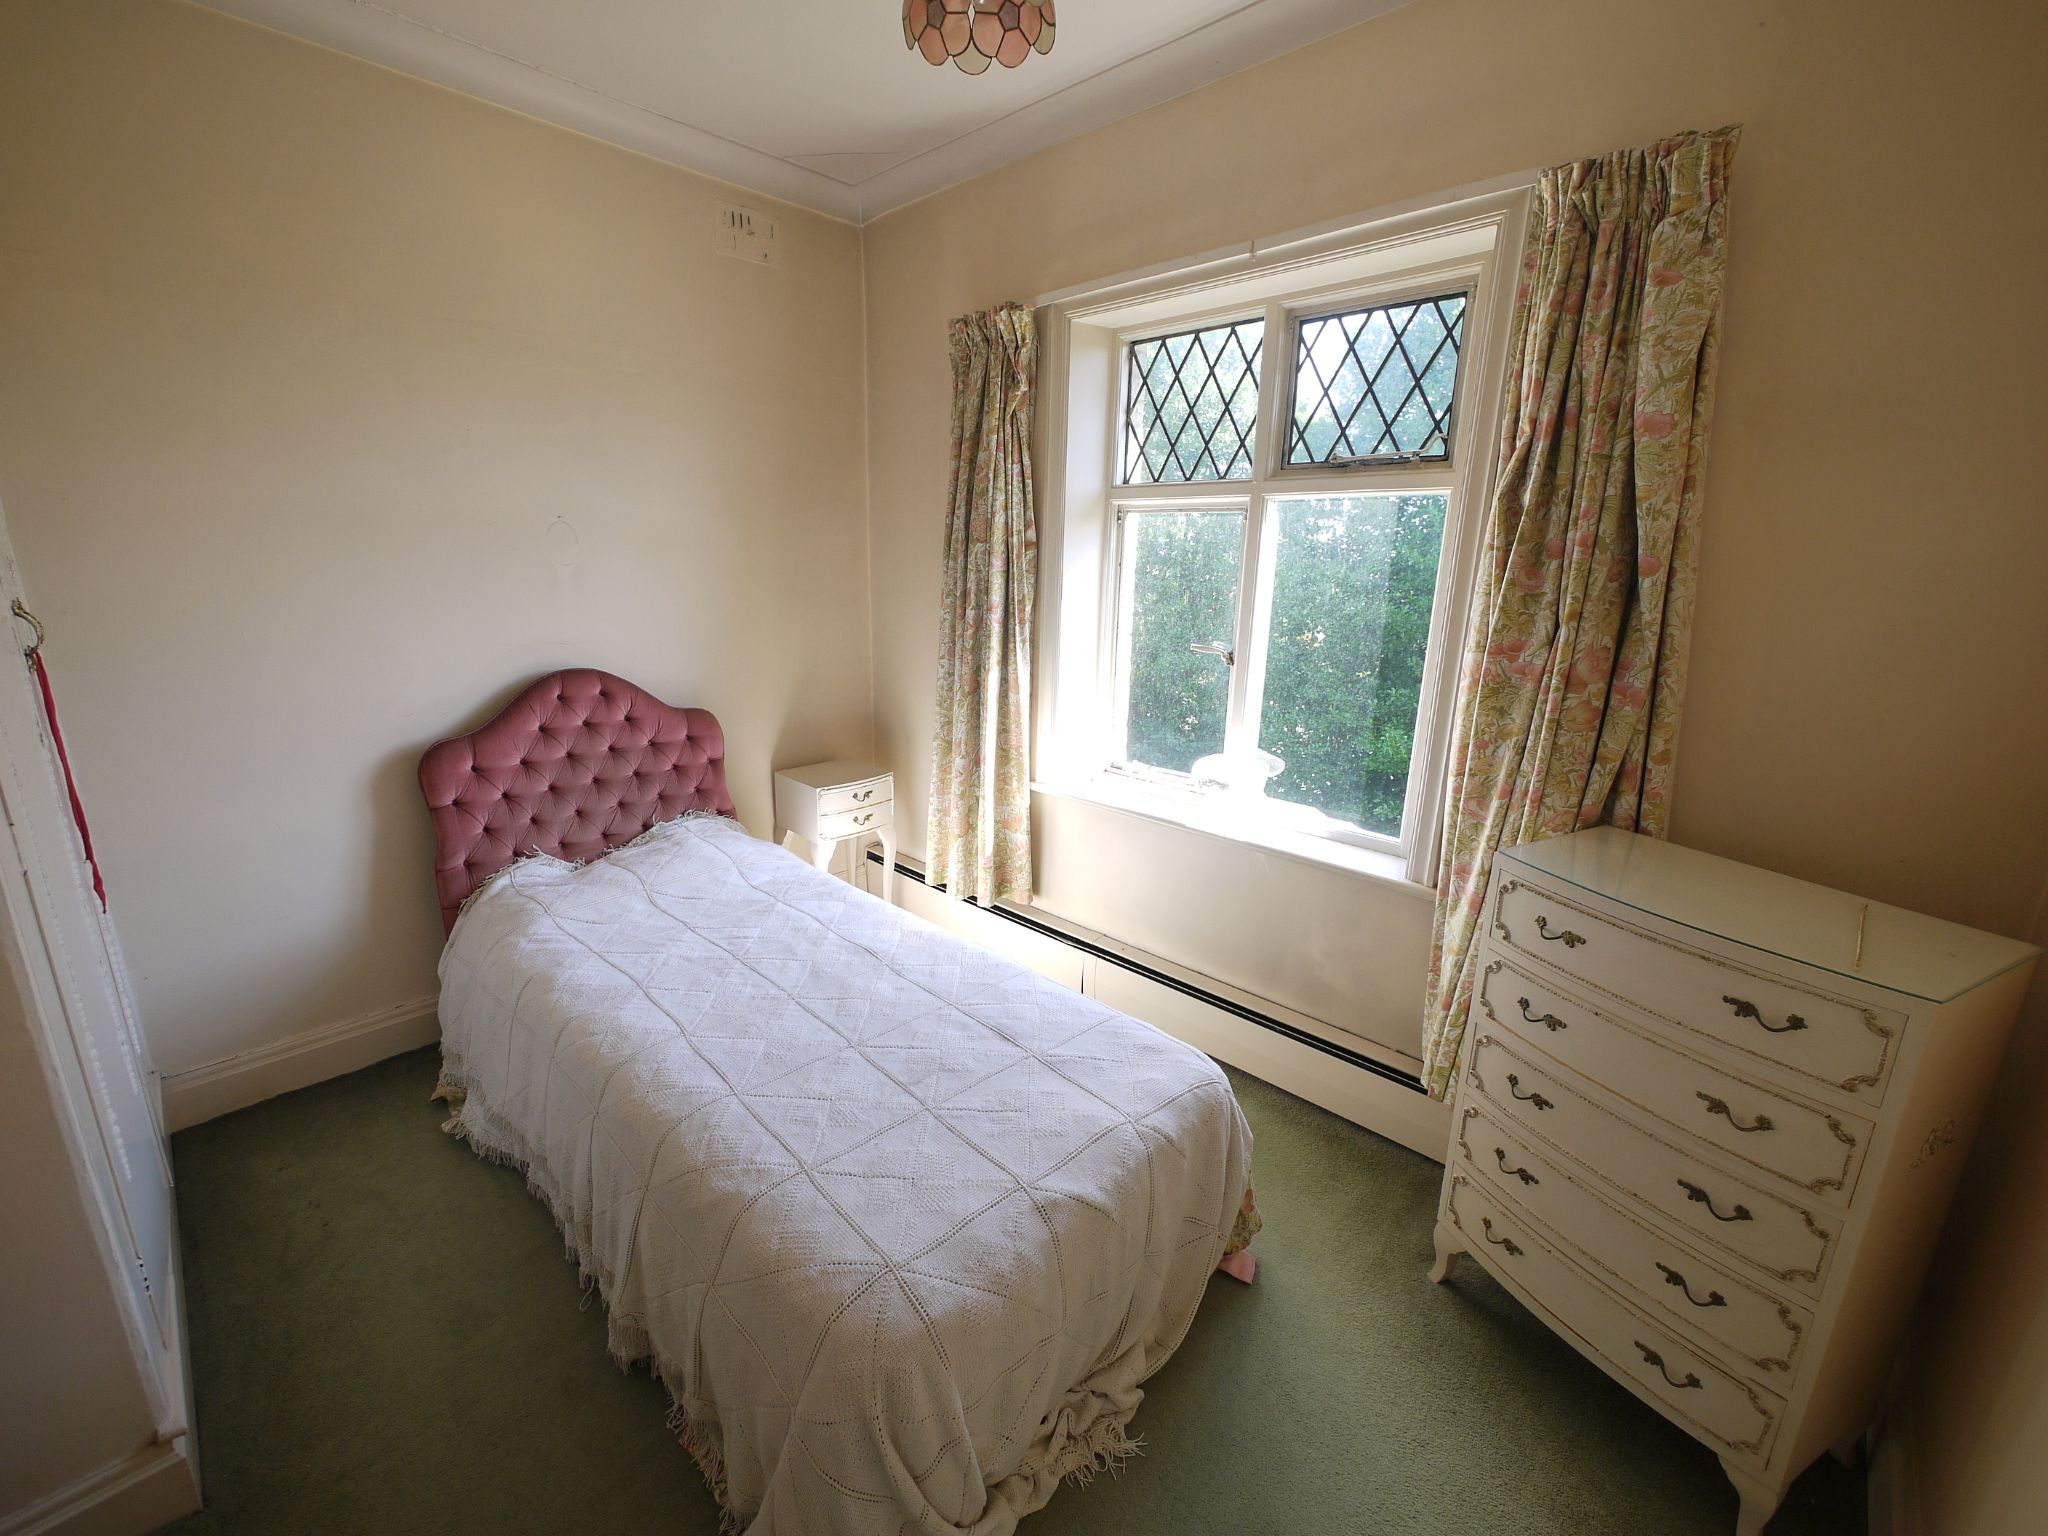 4 bedroom semi-detached house SSTC in Brighouse - Bedroom 4.